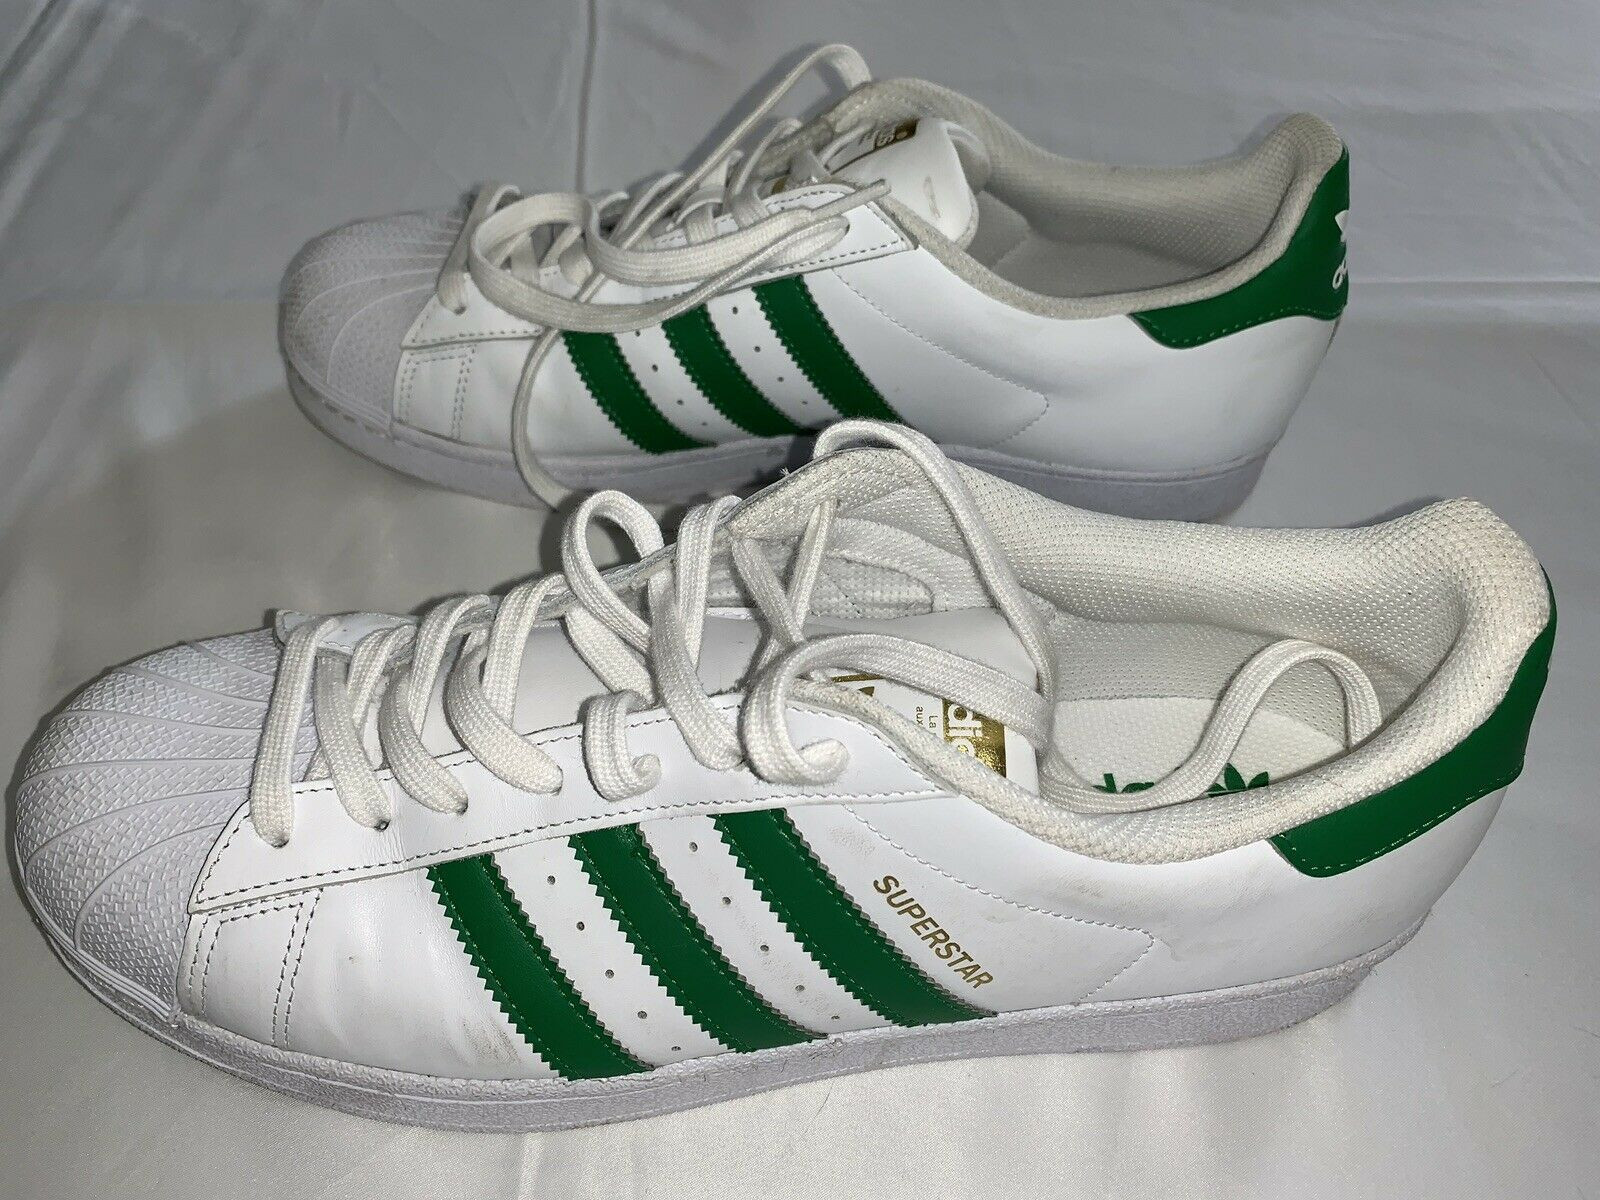 new style a5961 9e16f adidas Superstar Shoes White & Green Mens Size 11 SNEAKERS PGD 789006 Gold